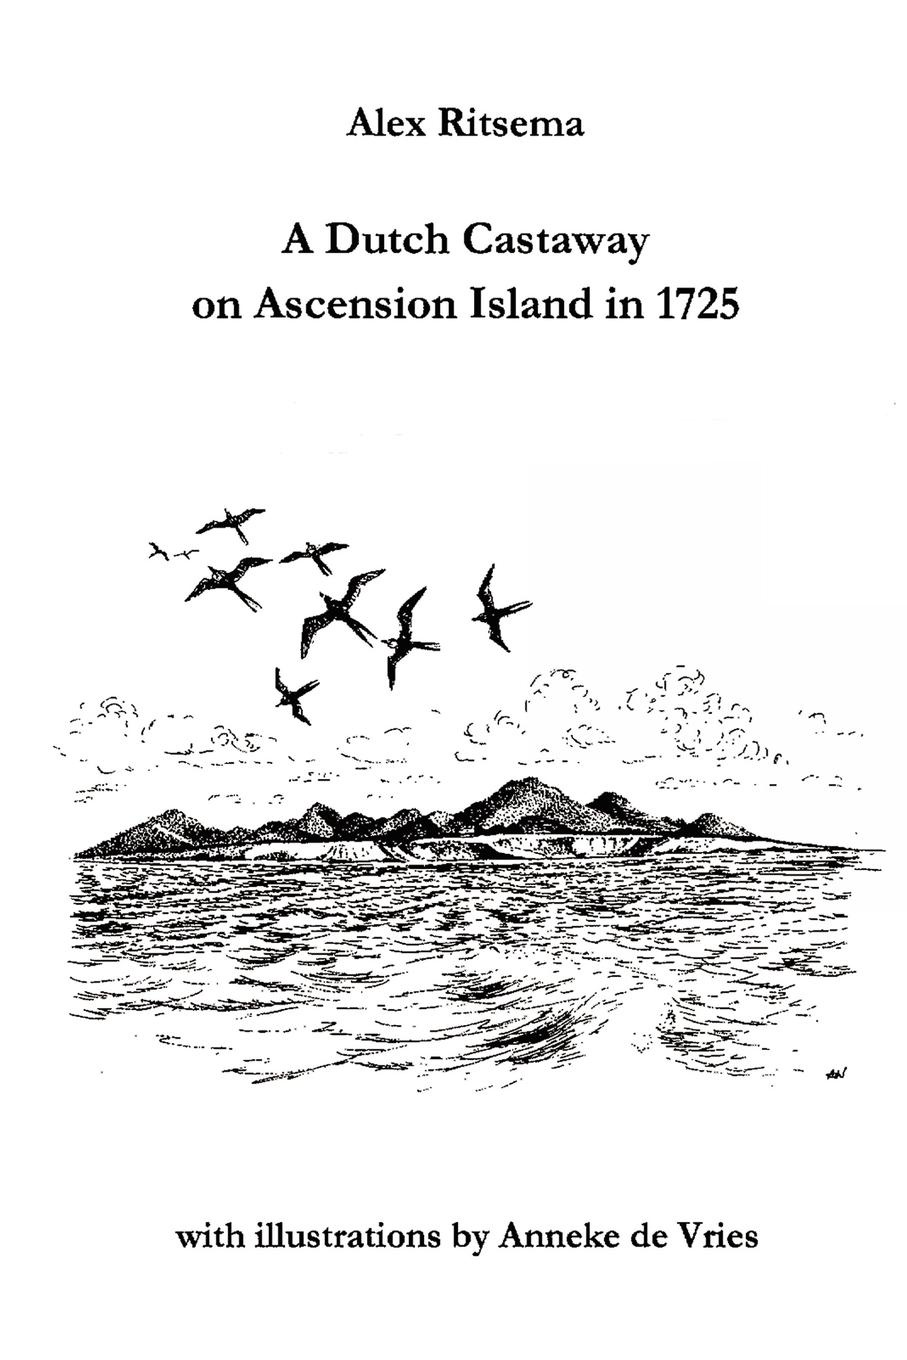 Alex Ritsema A DUTCH CASTAWAY ON ASCENSION ISLAND IN 1725